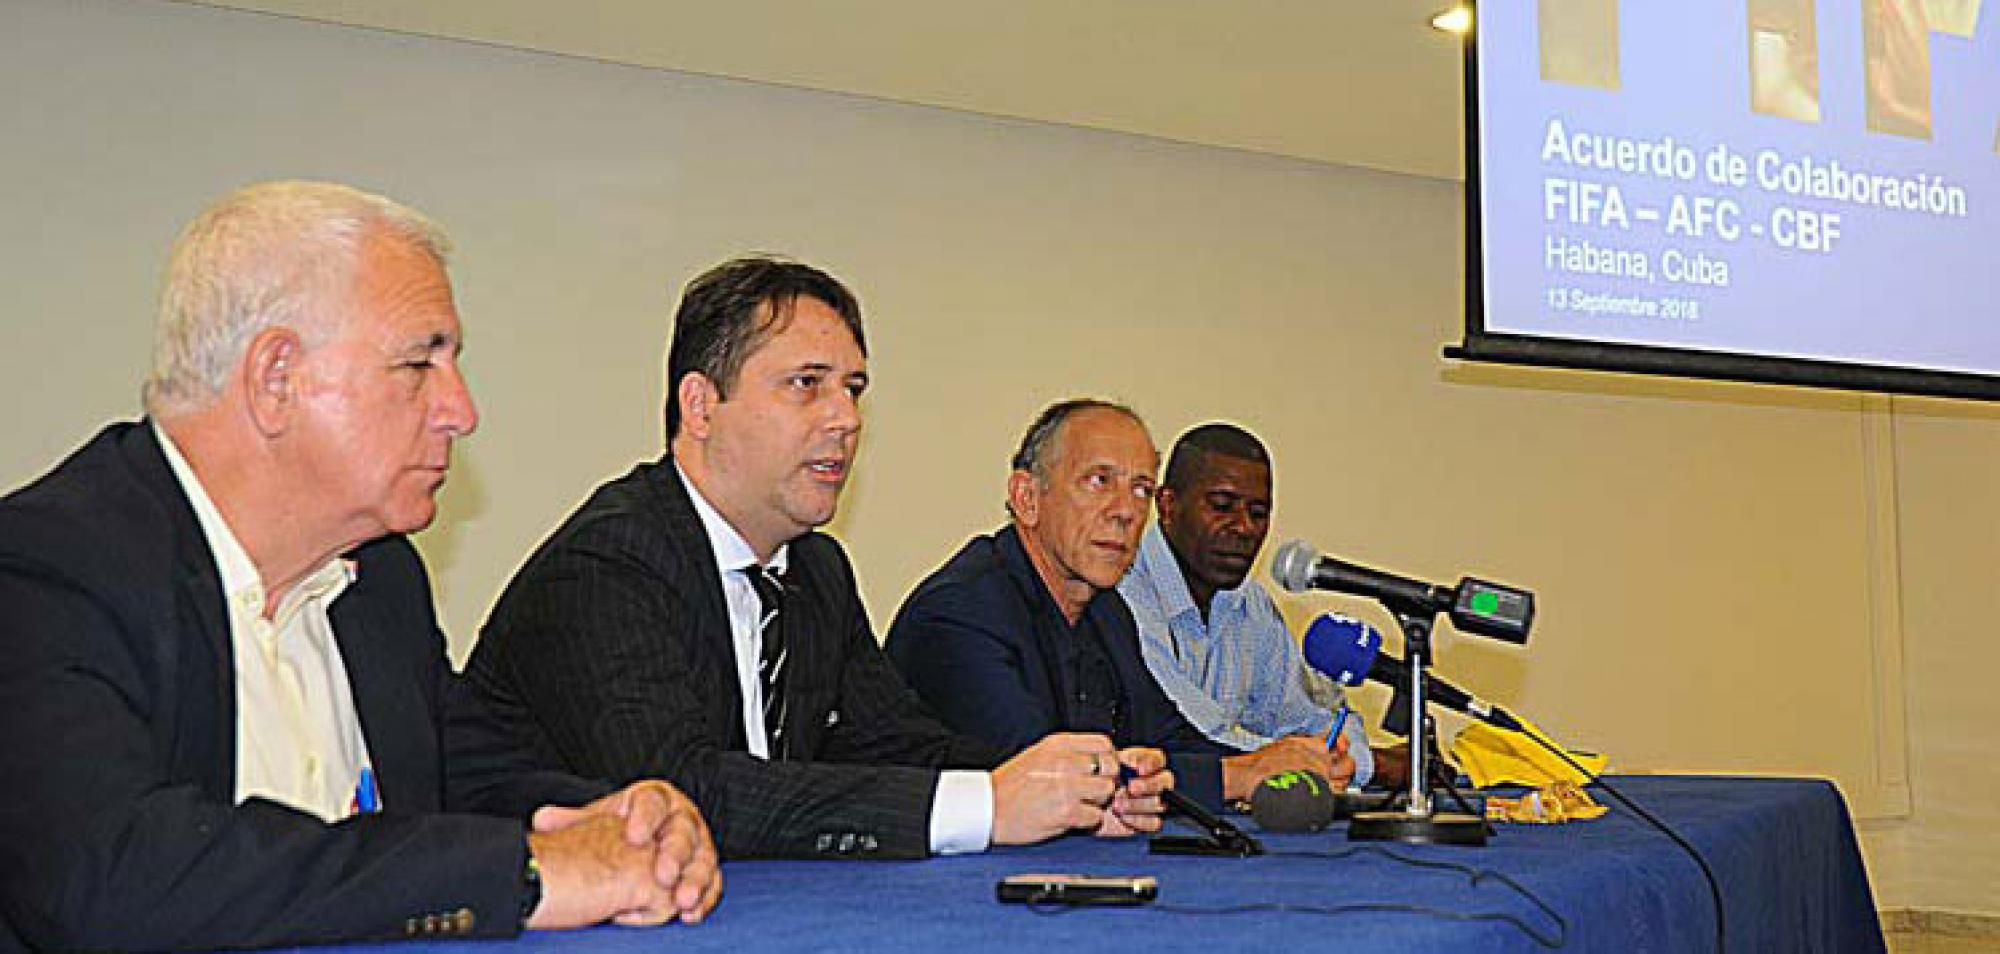 Cuba-Brazil: Agreement in Developing Soccer in Cuba